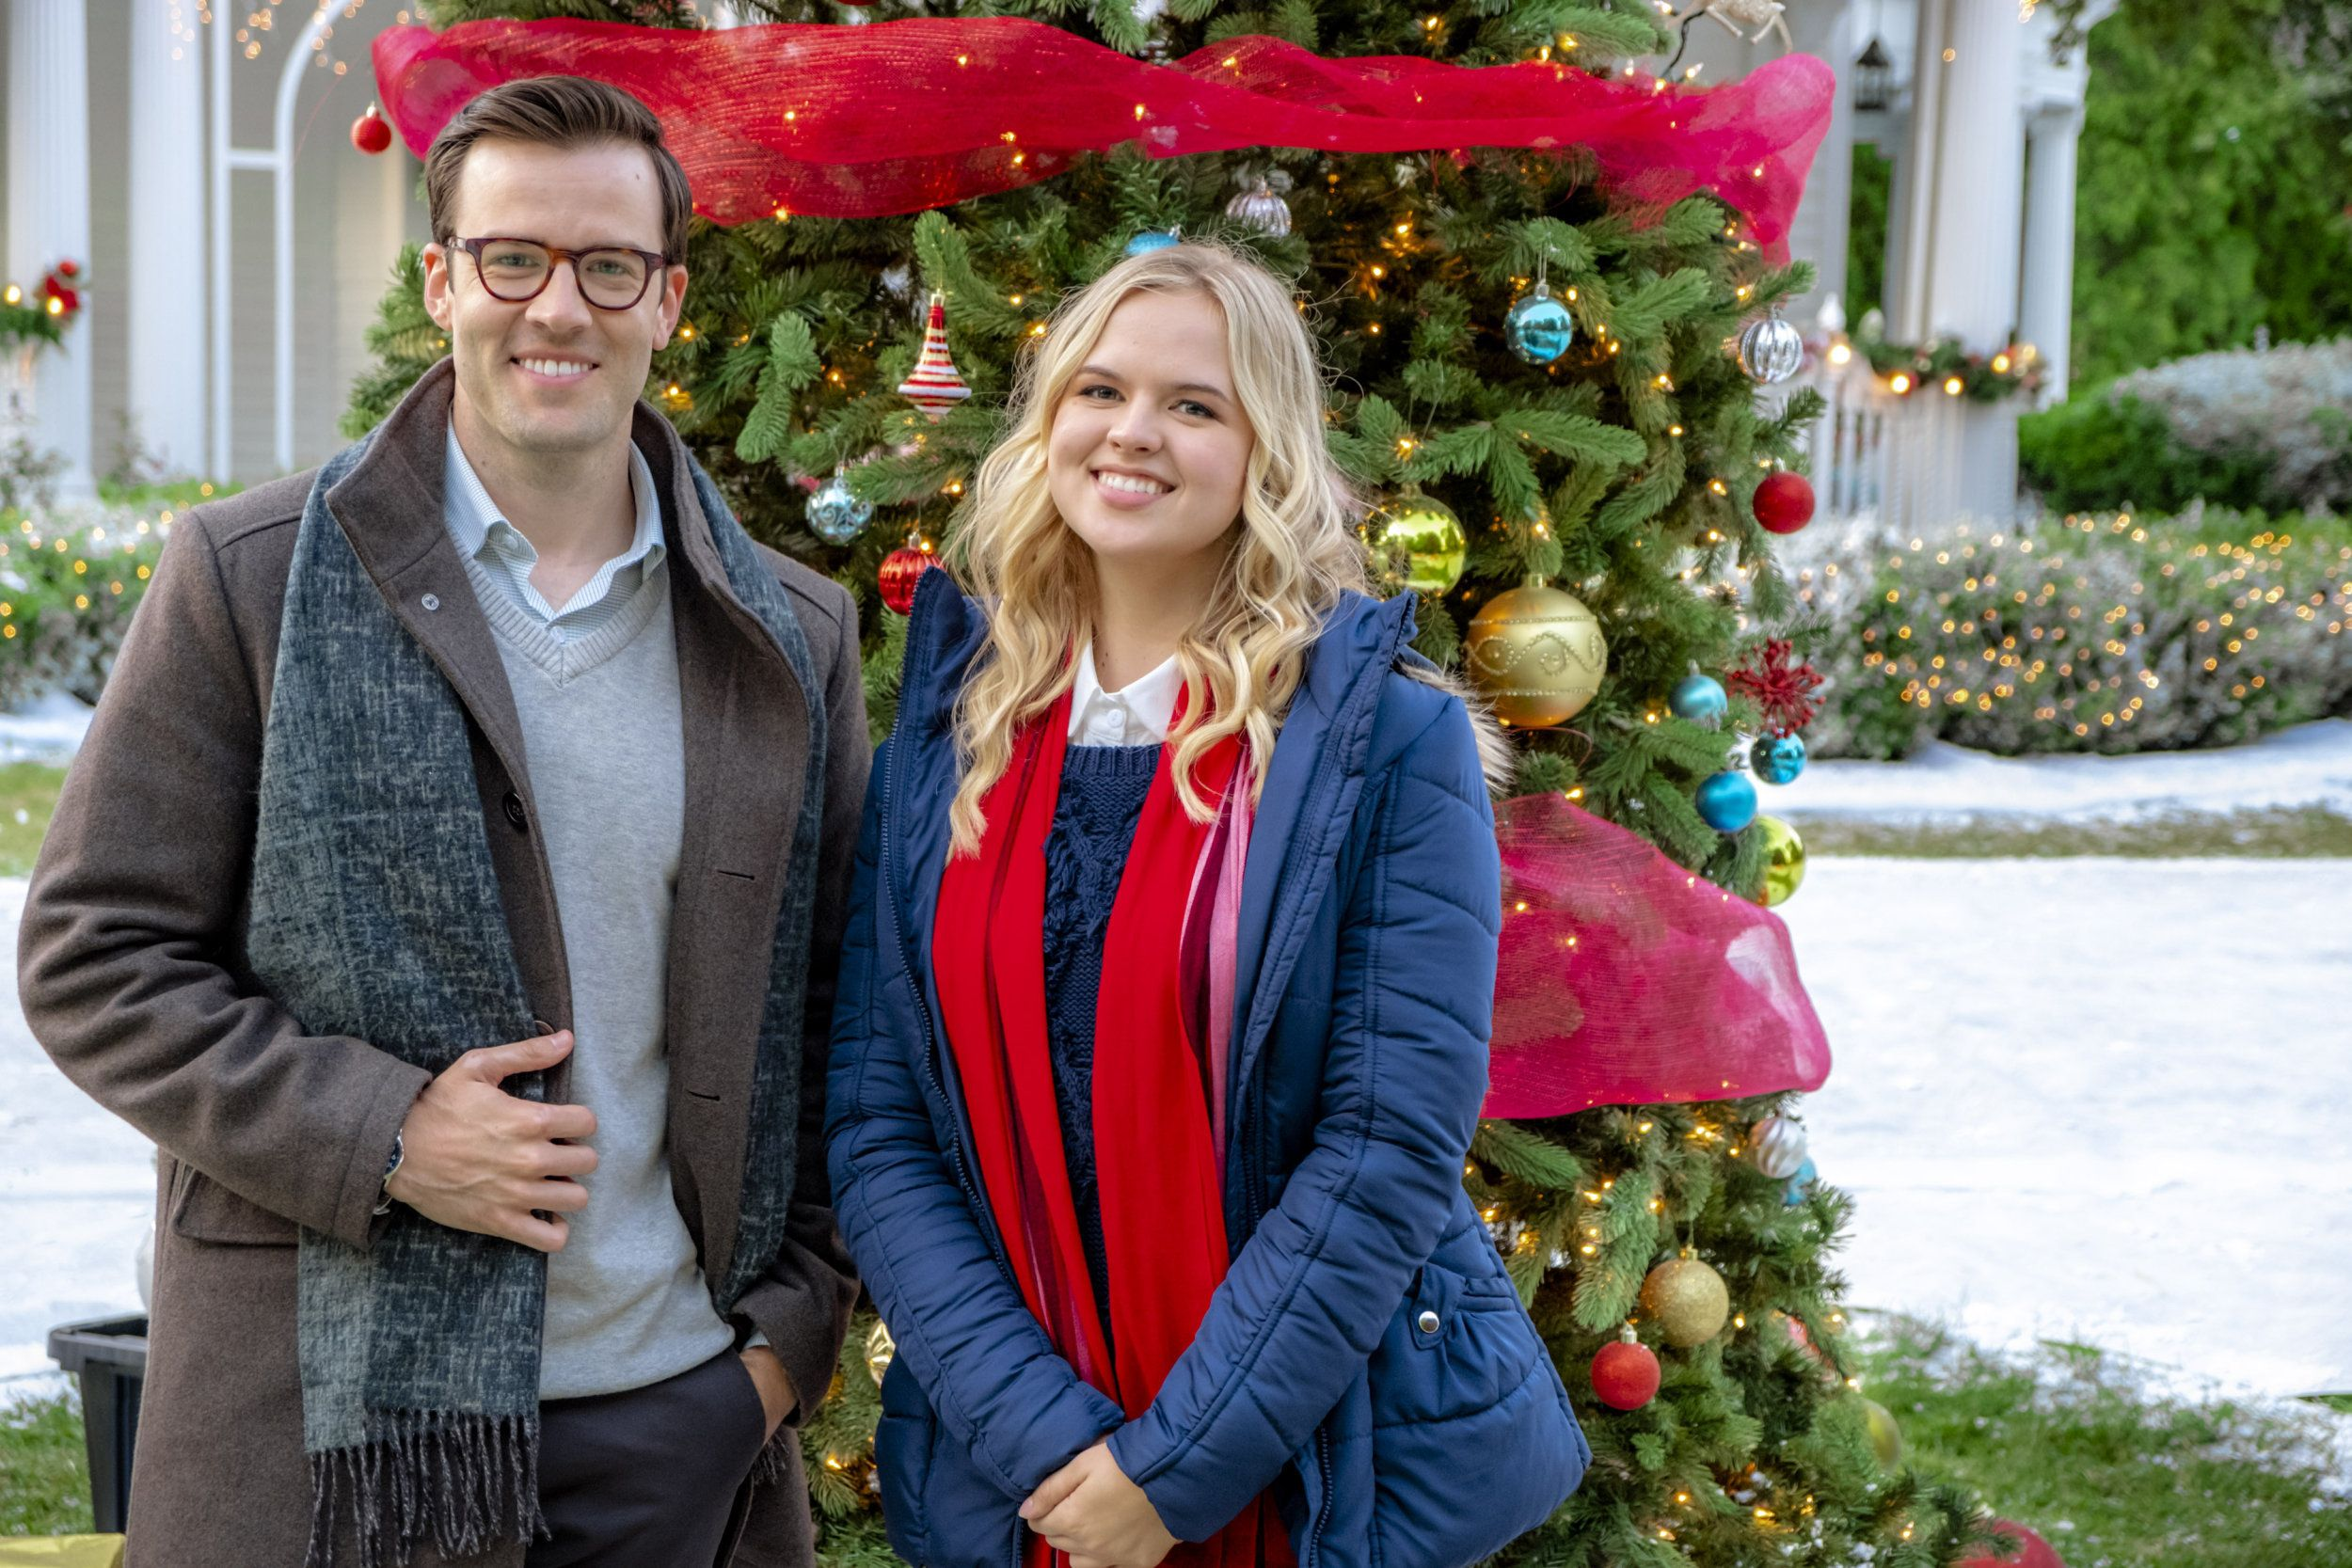 Christmas At Pemberley.Check Out Photos From The Hallmark Channel Movie Christmas